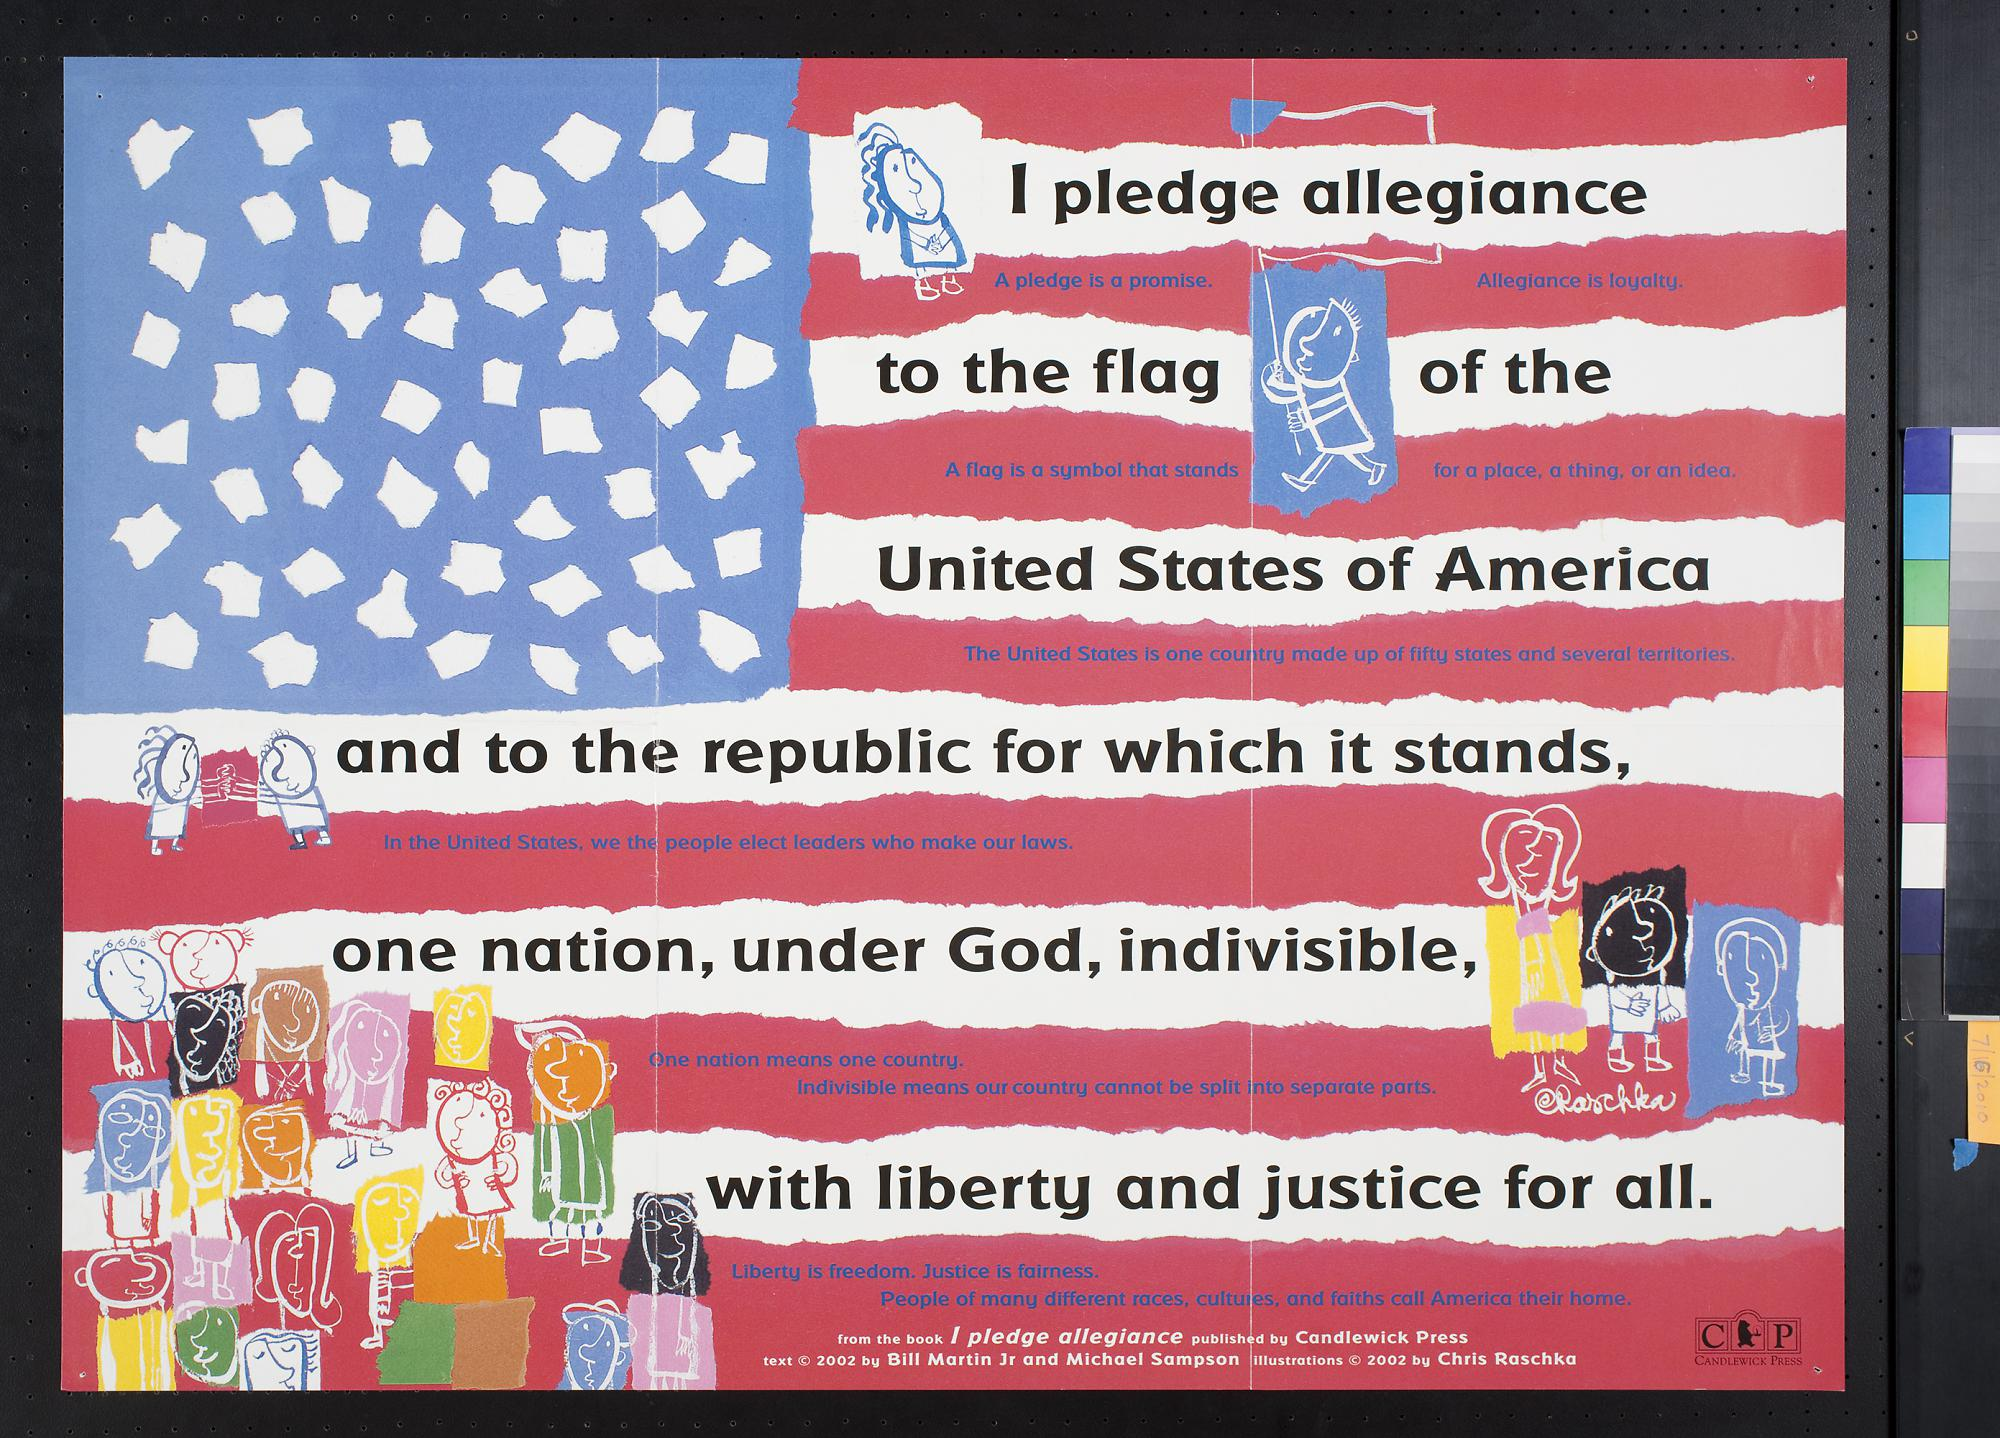 the pledge of allegiance The pledge of allegiance i pledge allegiance to the flag of the united states of america and to the republic for which it stands, one nation under god, .